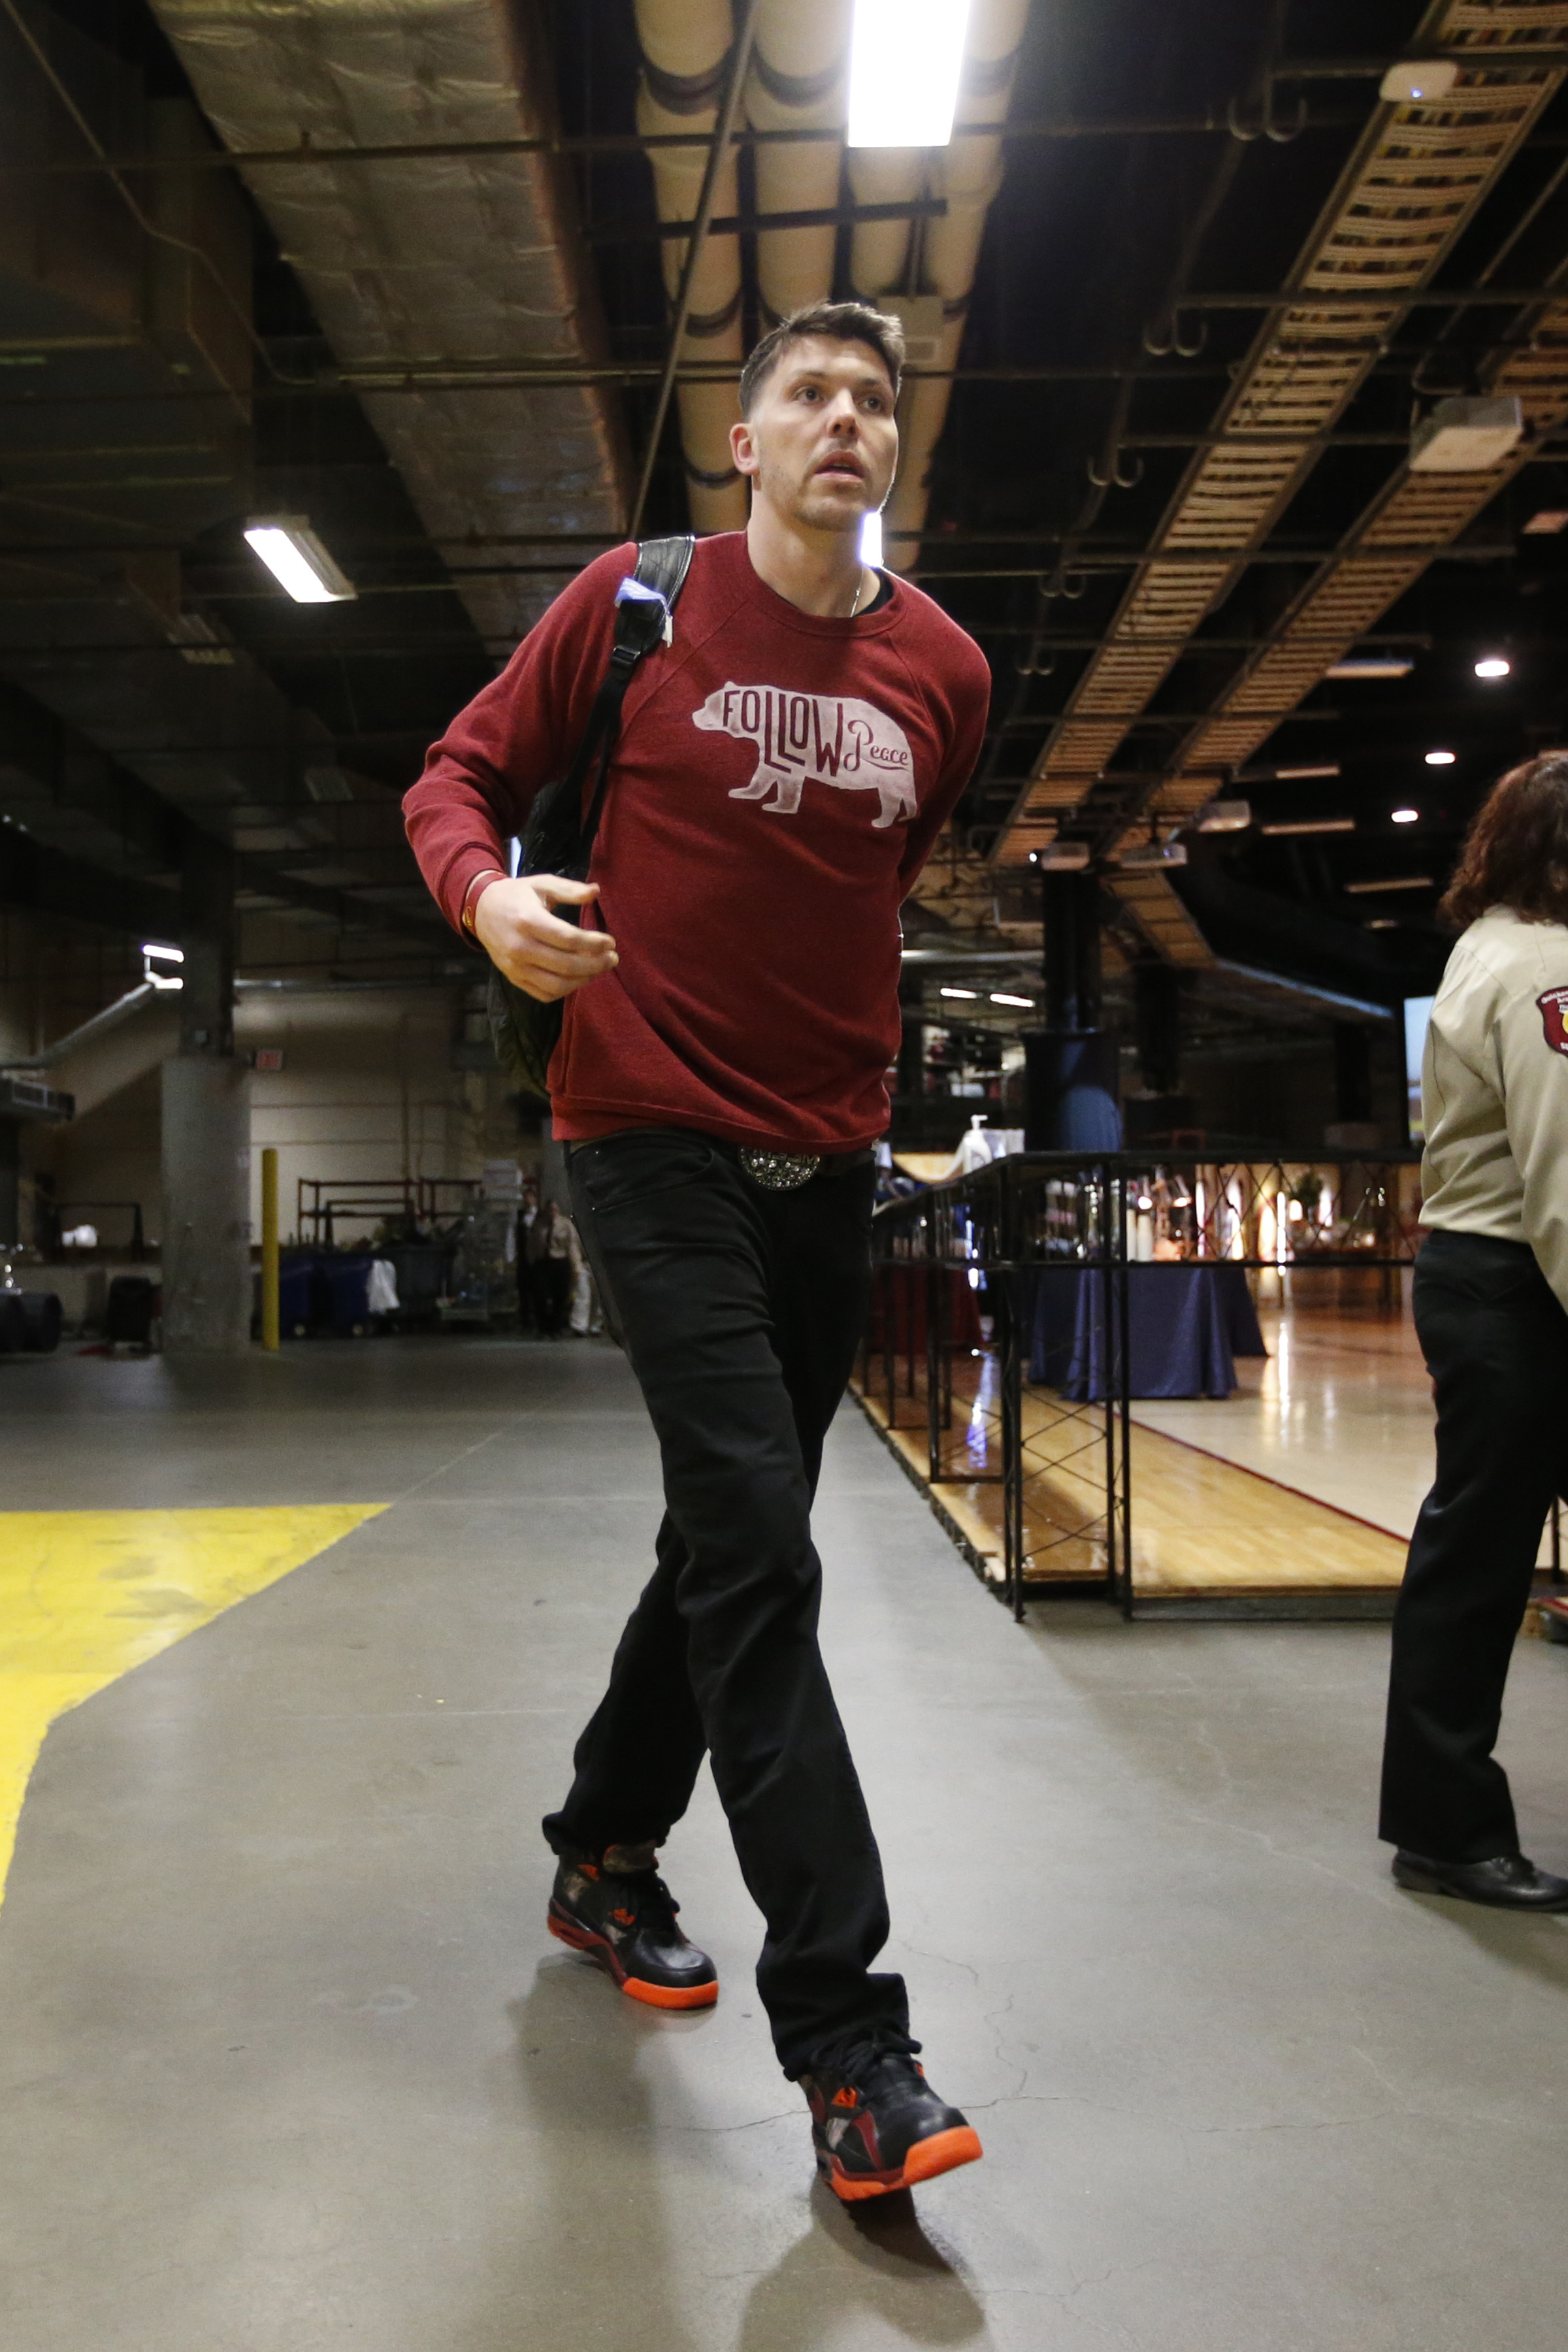 CLEVELAND, OH - MAY 4: Mike Miller #18 of the Cleveland Cavaliers arrives at the arena before a game against the Chicago Bulls in Game One of the Eastern Conference Semifinals of the NBA Playoffs at The Quicken Loans Arena on May 4, 2015 in Cleveland, Ohi